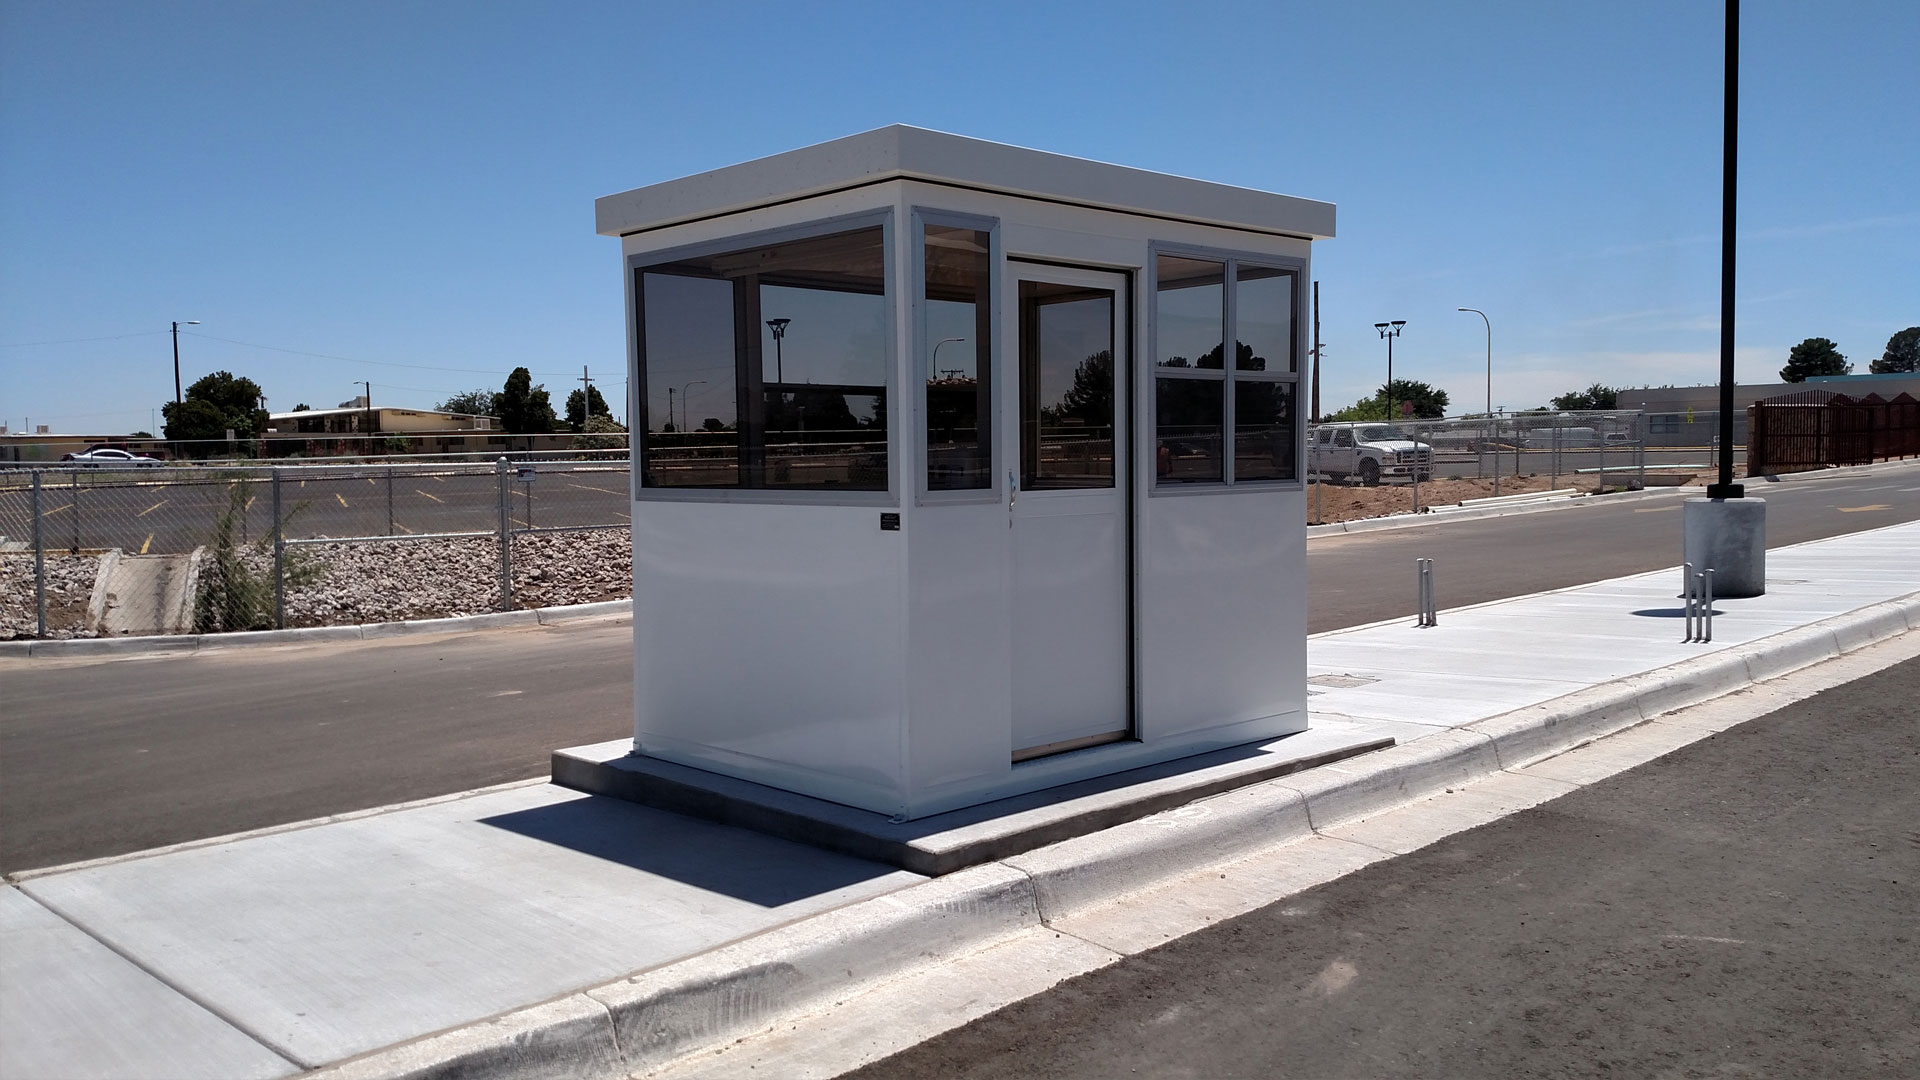 Guard booth booths security shack